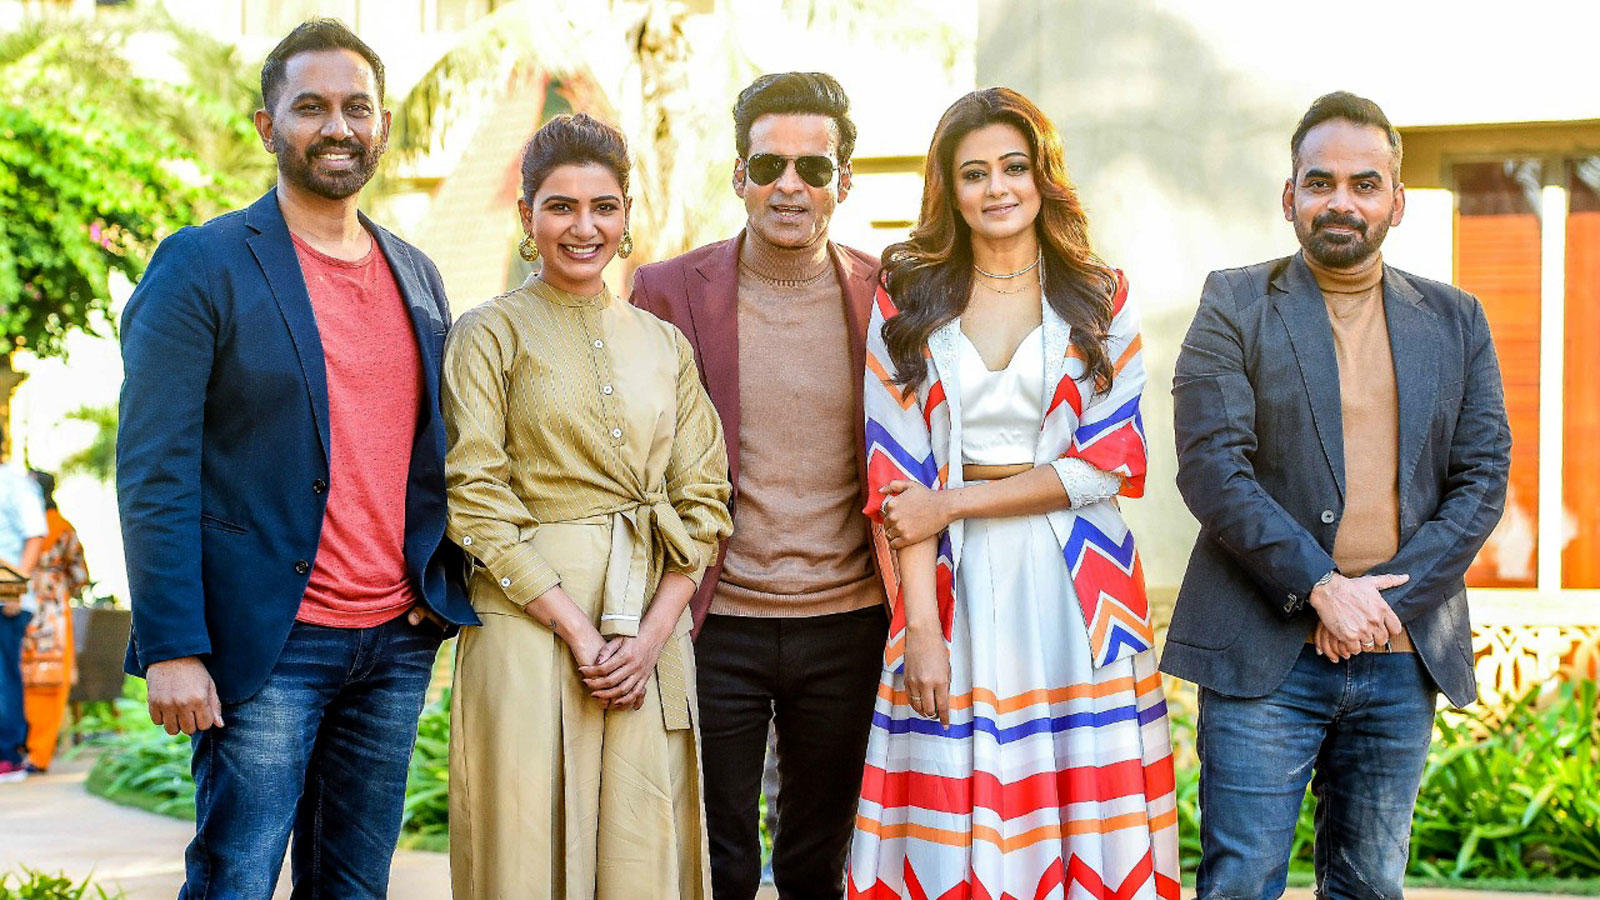 manoj-bajpayee-samantha-akkineni-priyamani-were-seen-at-an-event-in-mumbai-today